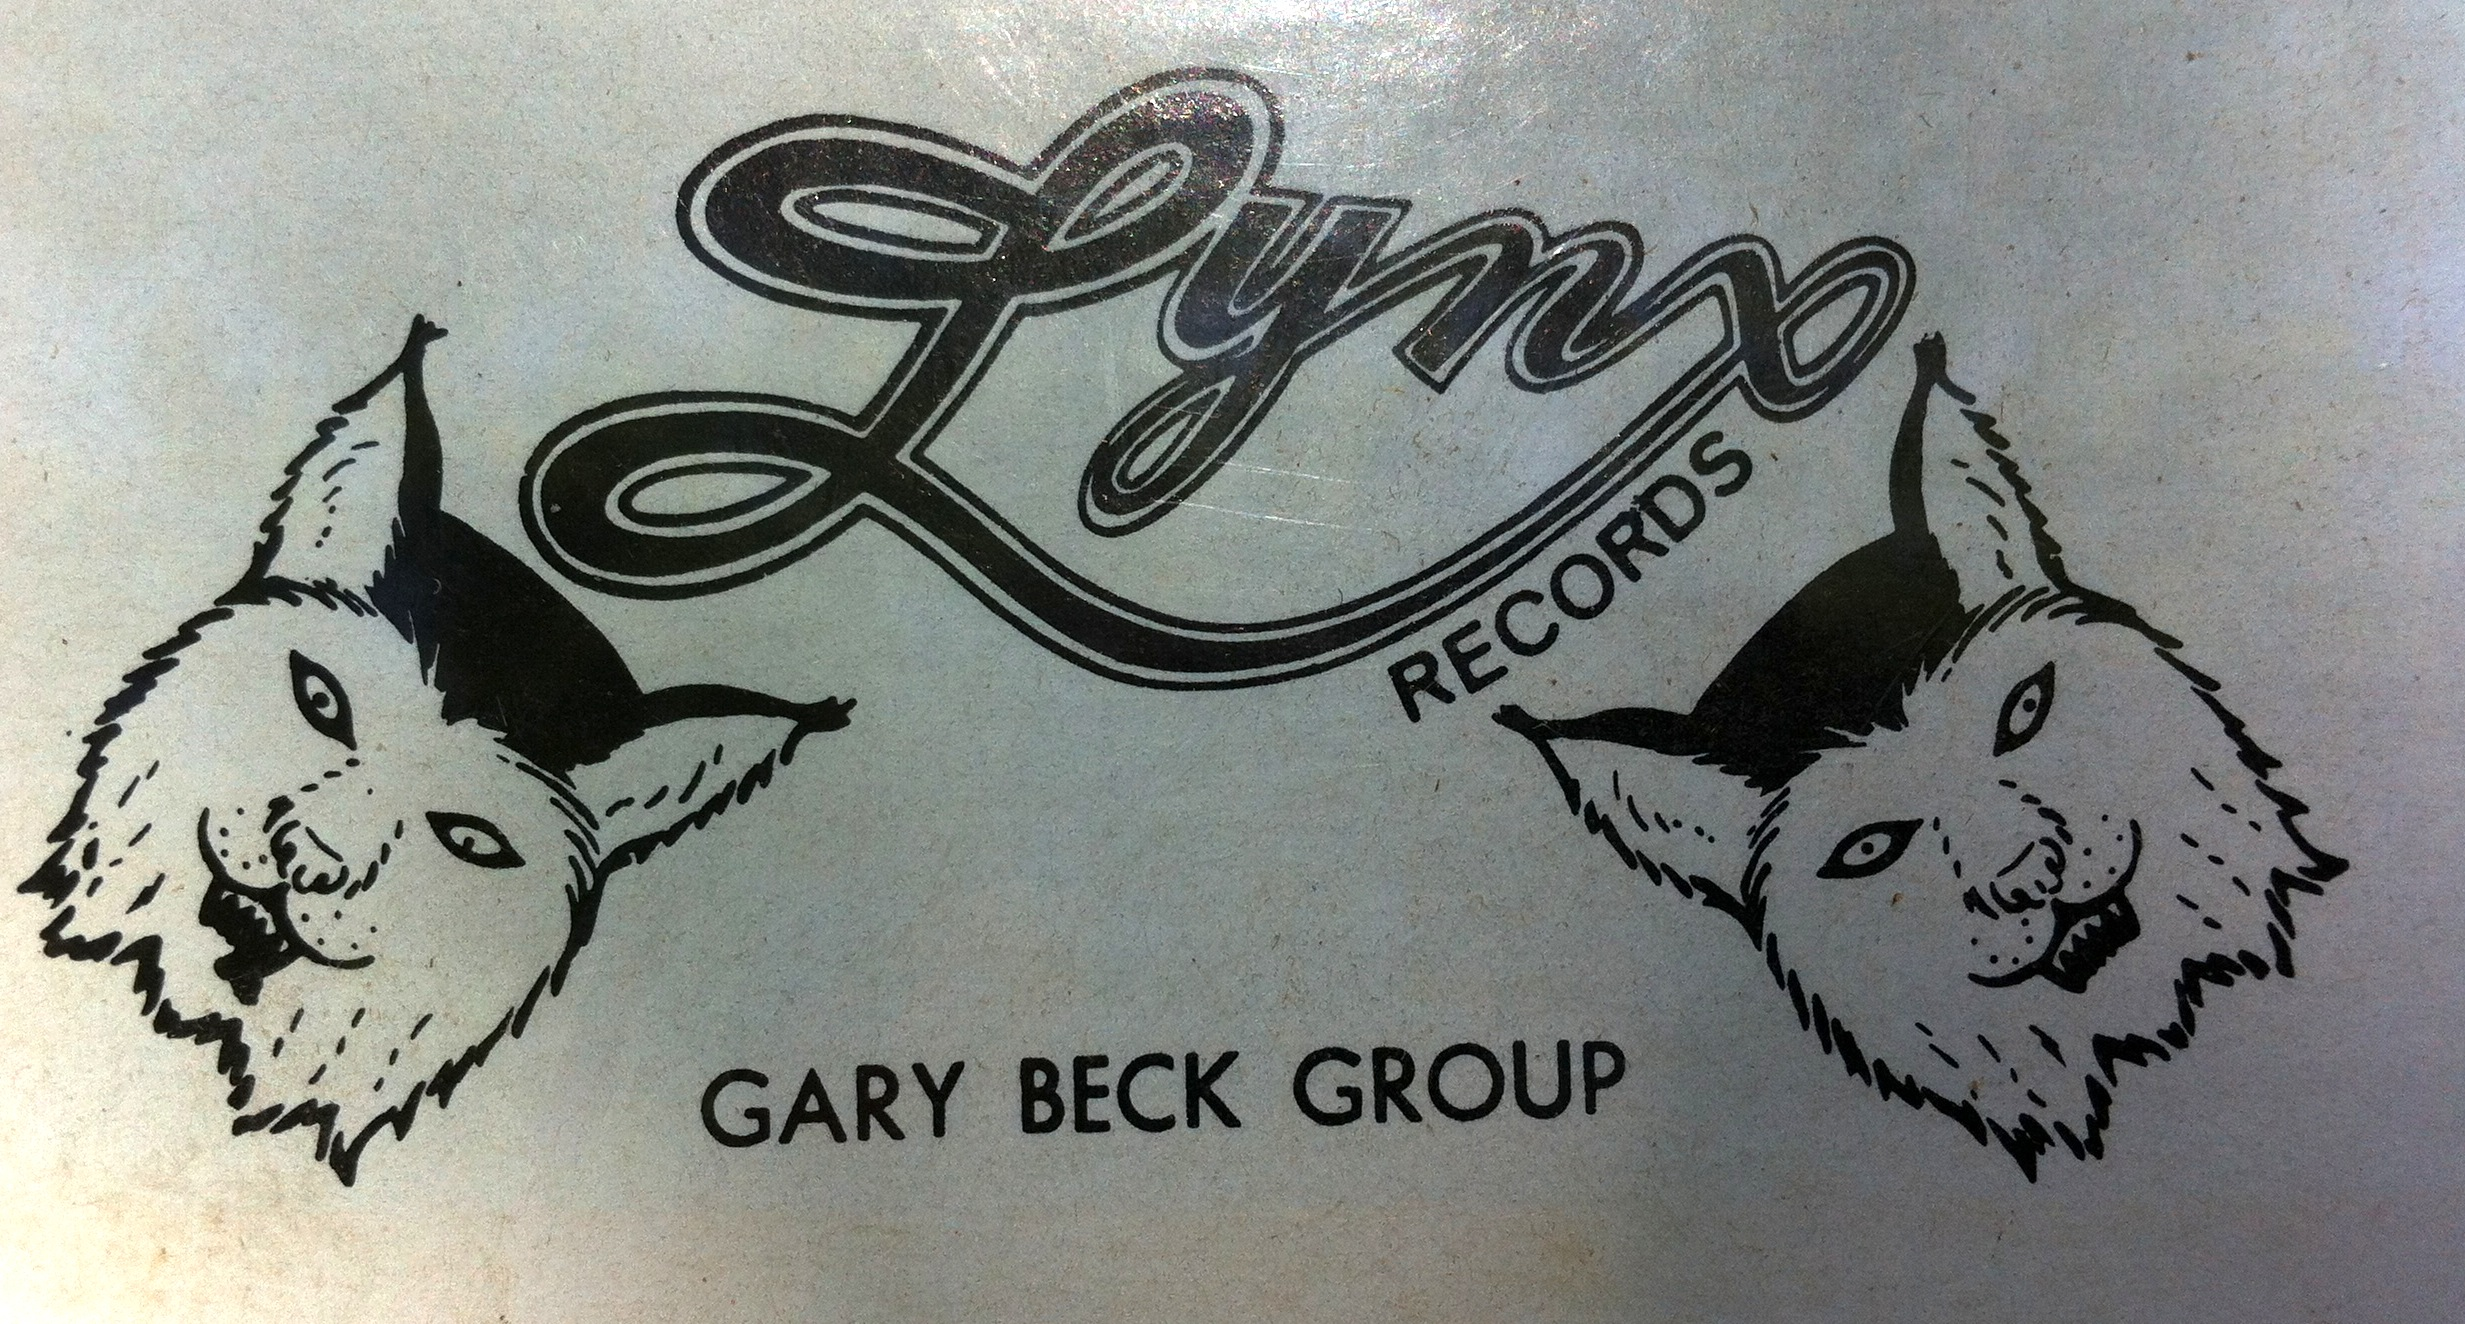 lynx records logo